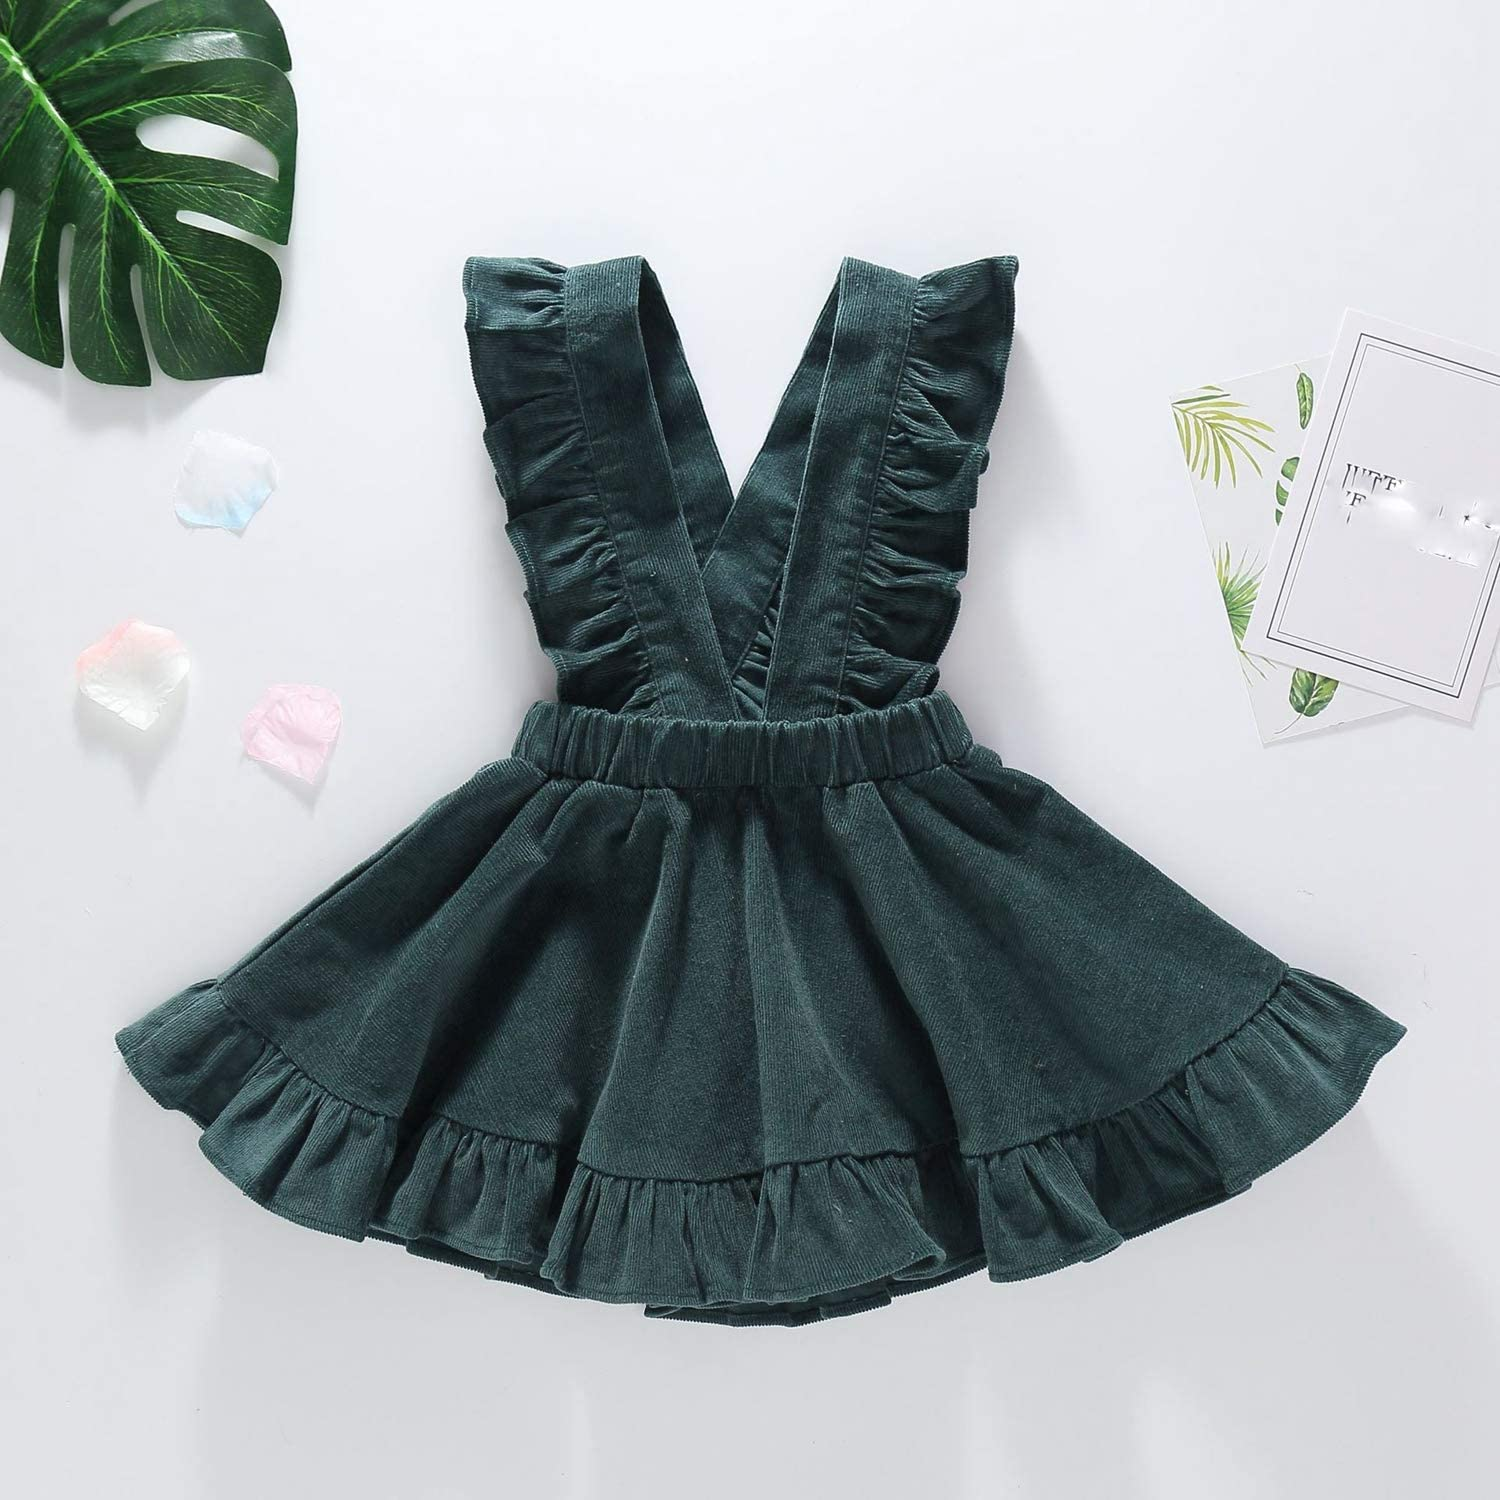 New Baby Outfit Toddler Baby Kids Girls Infant Strap Suspender Skirt Overalls Outfits Summer Girl Clothes 1-3 Years Army Green